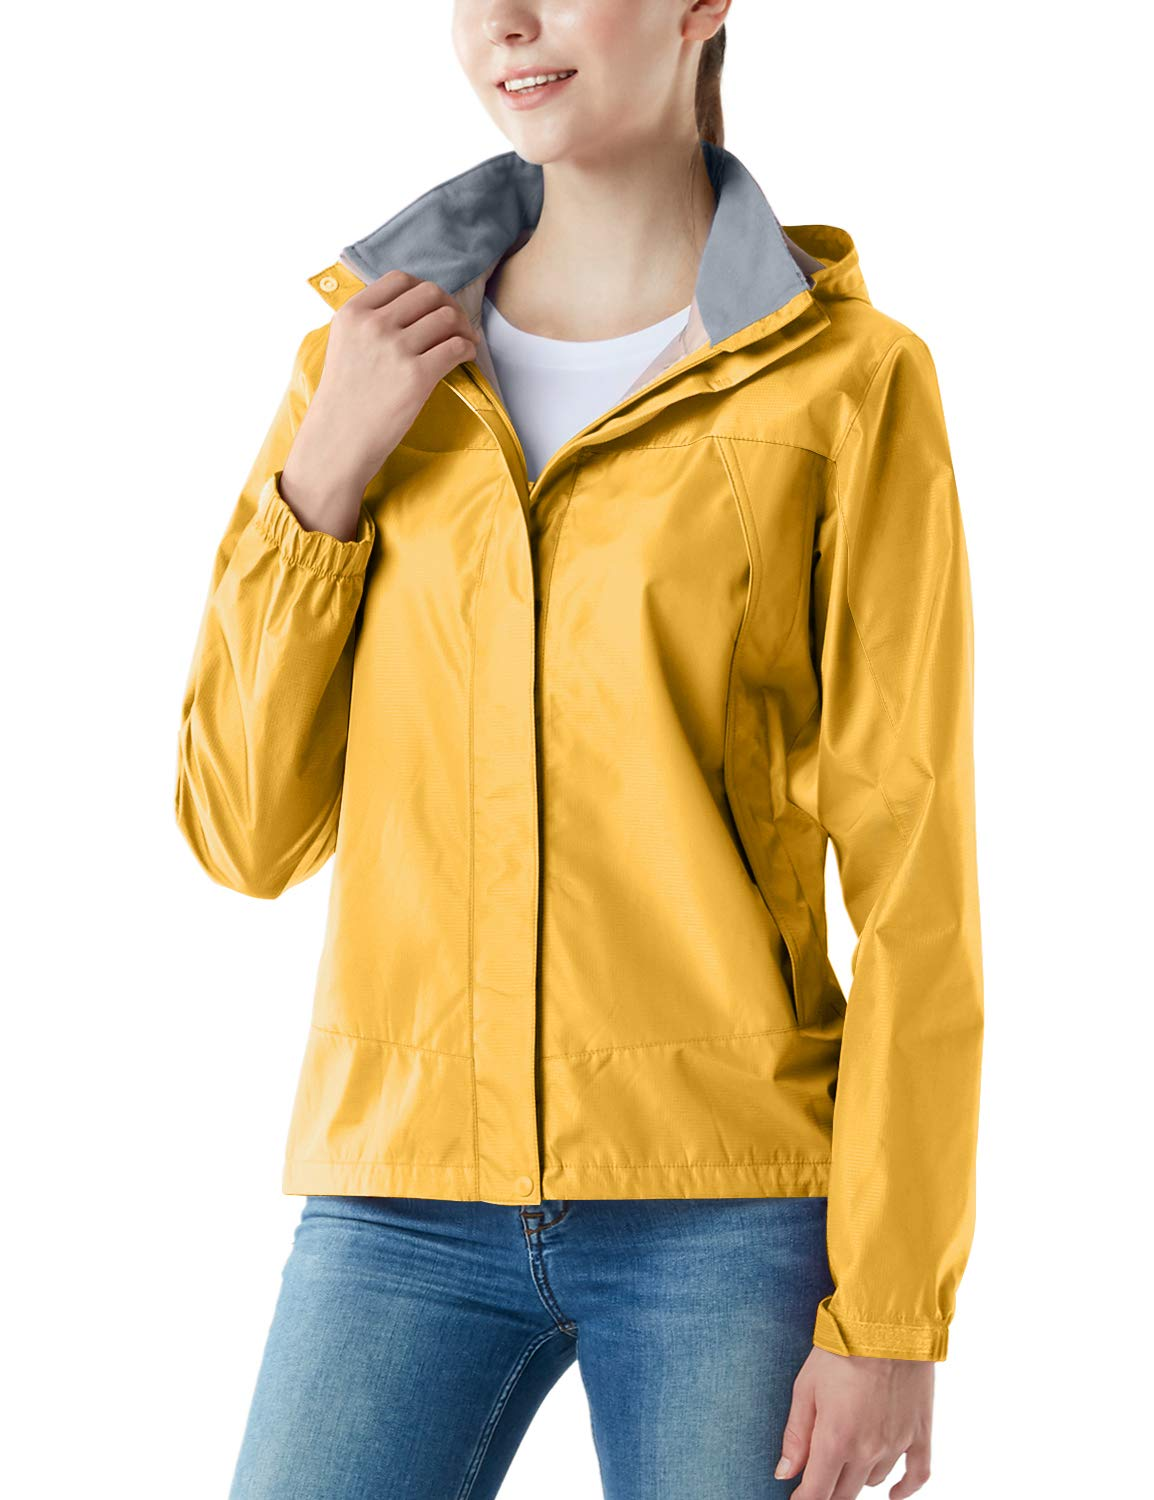 Tesla TM-FET02-YLW_X-Small Women's Lightweight Water Proof Outdoor Raincoat Watertight Rain Defender Hooded Packable Jacket FET02